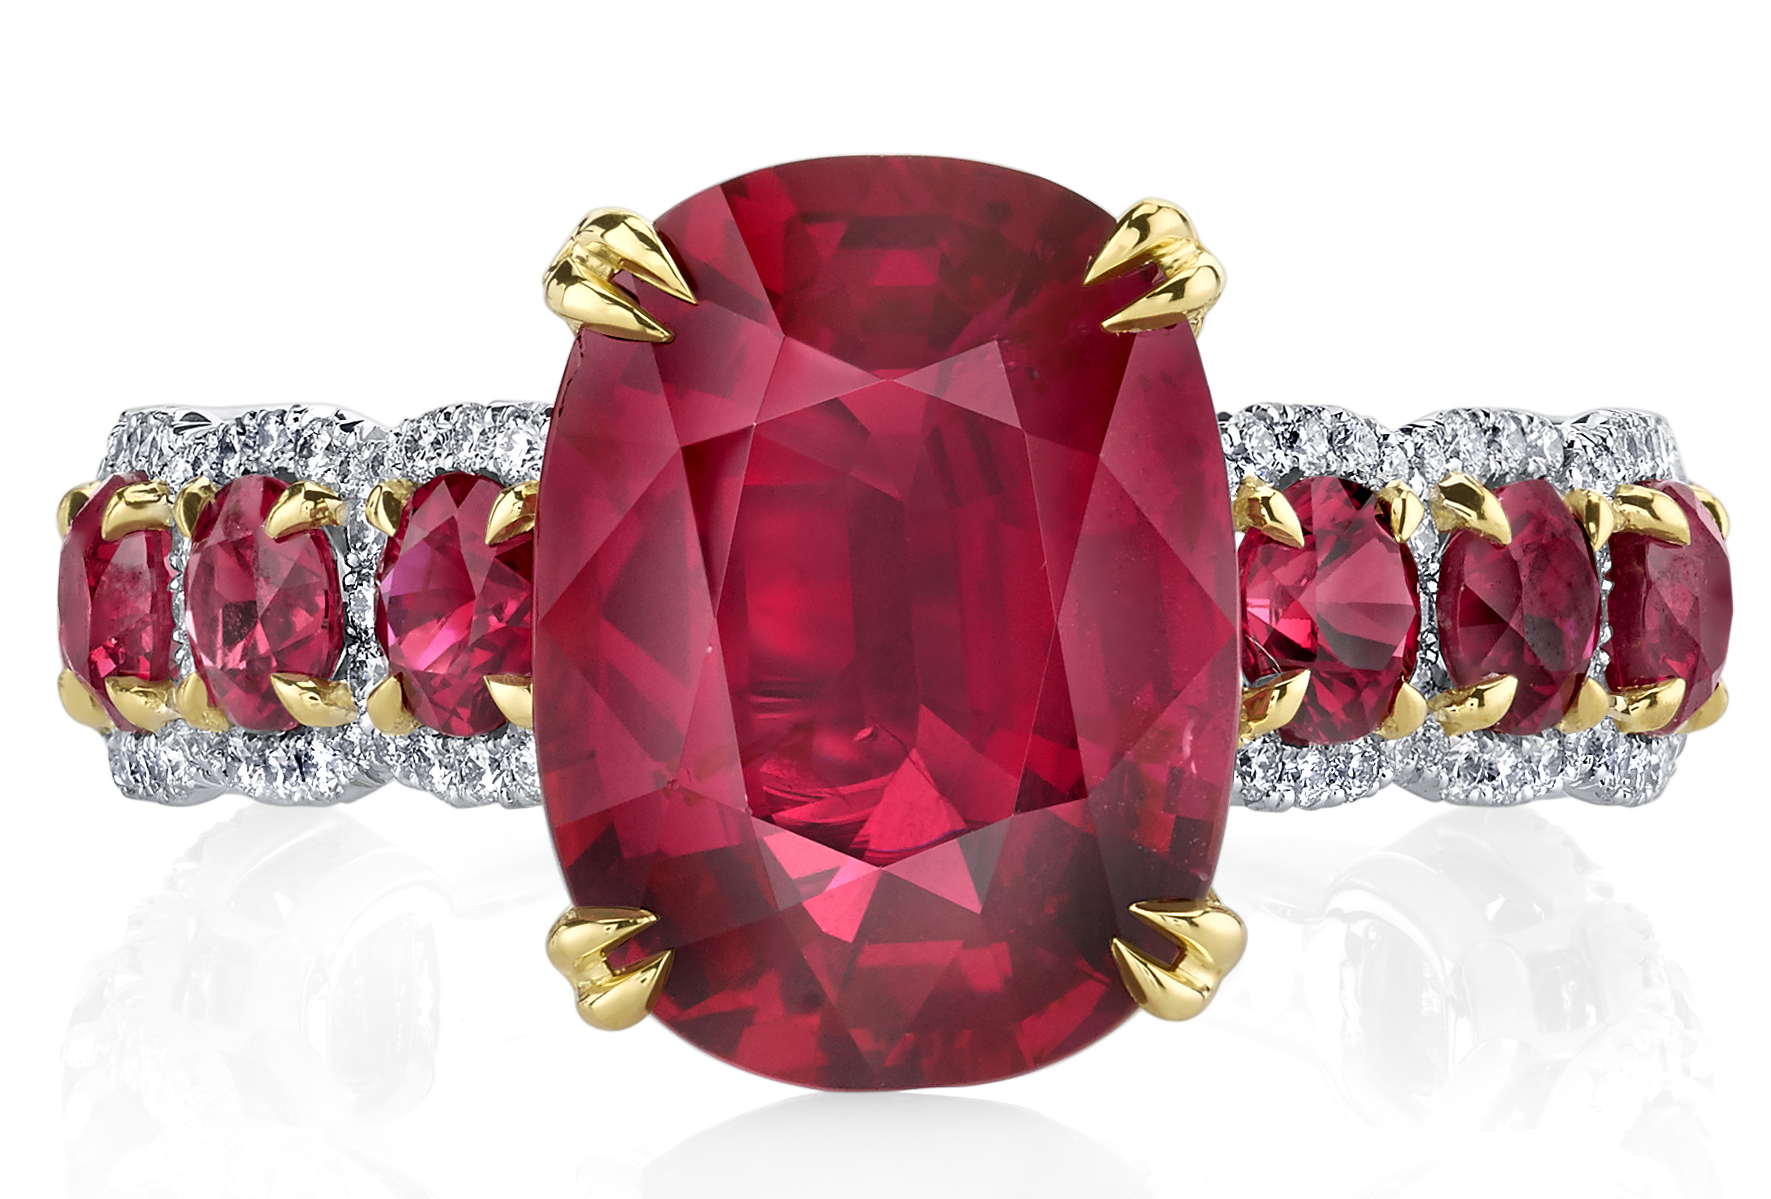 Omi Prive ruby ring | JCK On Your Market